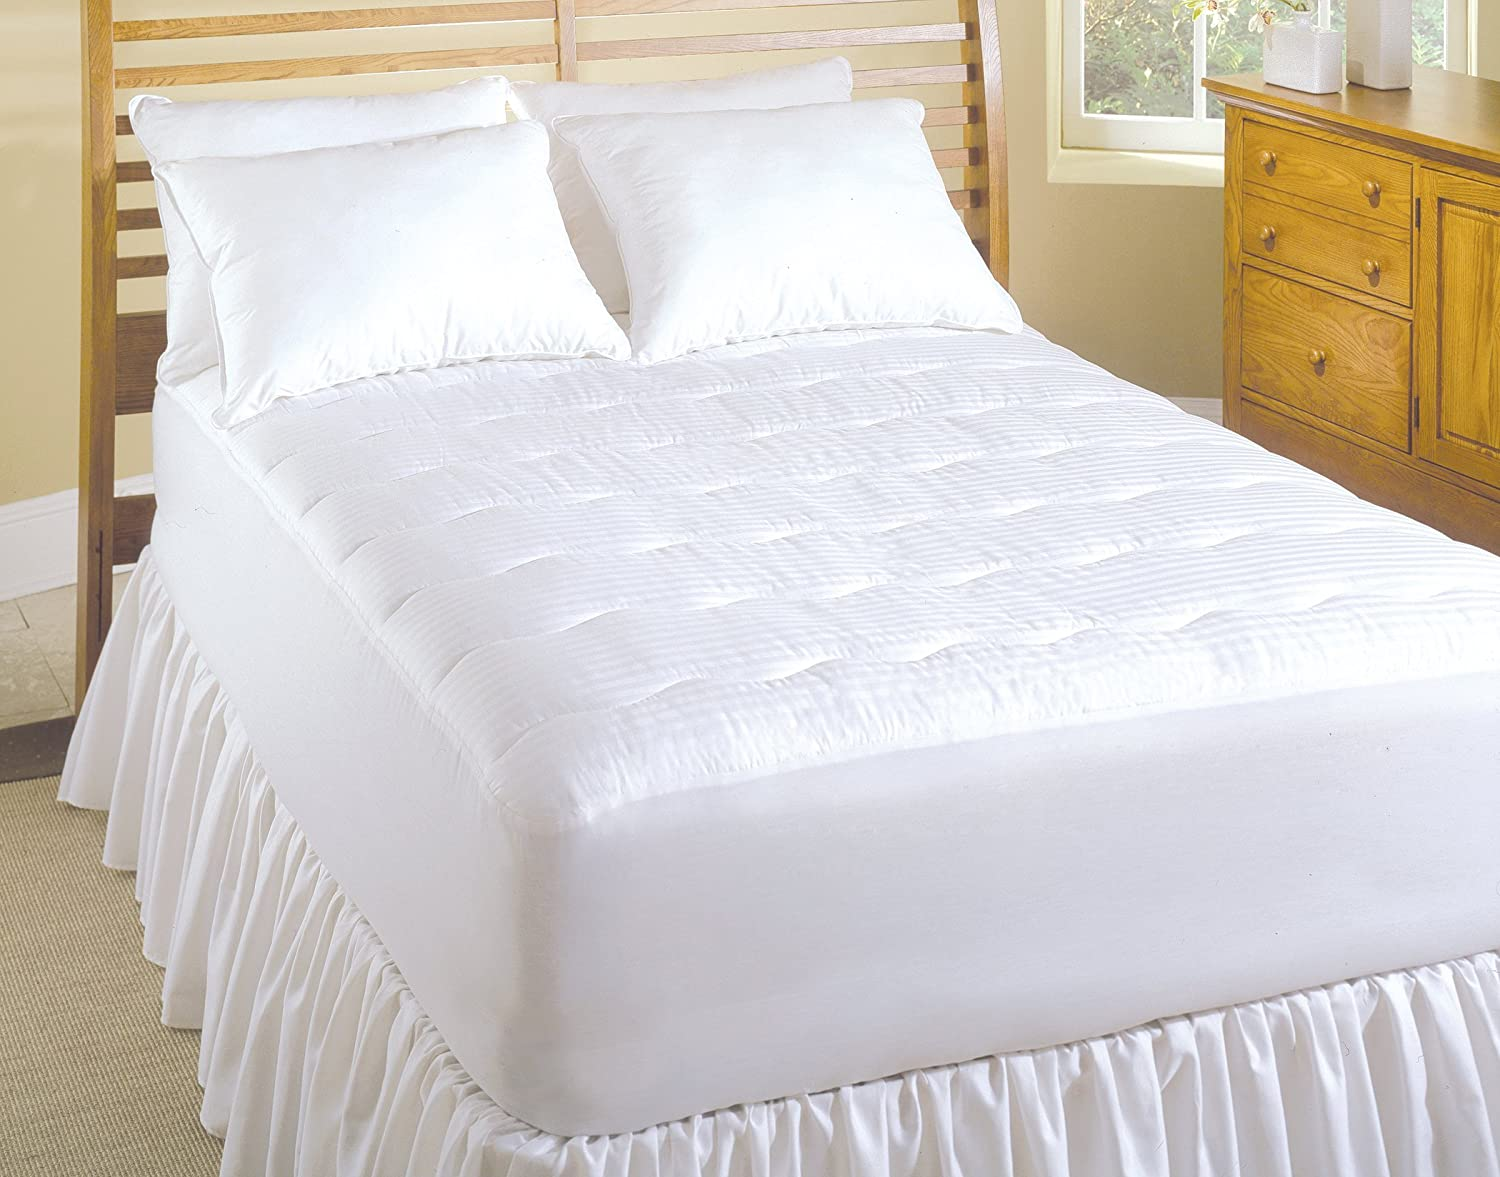 SoftHeat Smart Heated Electric Mattress Pad with Safe /& Warm Low Voltage Technology Renewed 233 Thread-Count California King Dobby Stripe